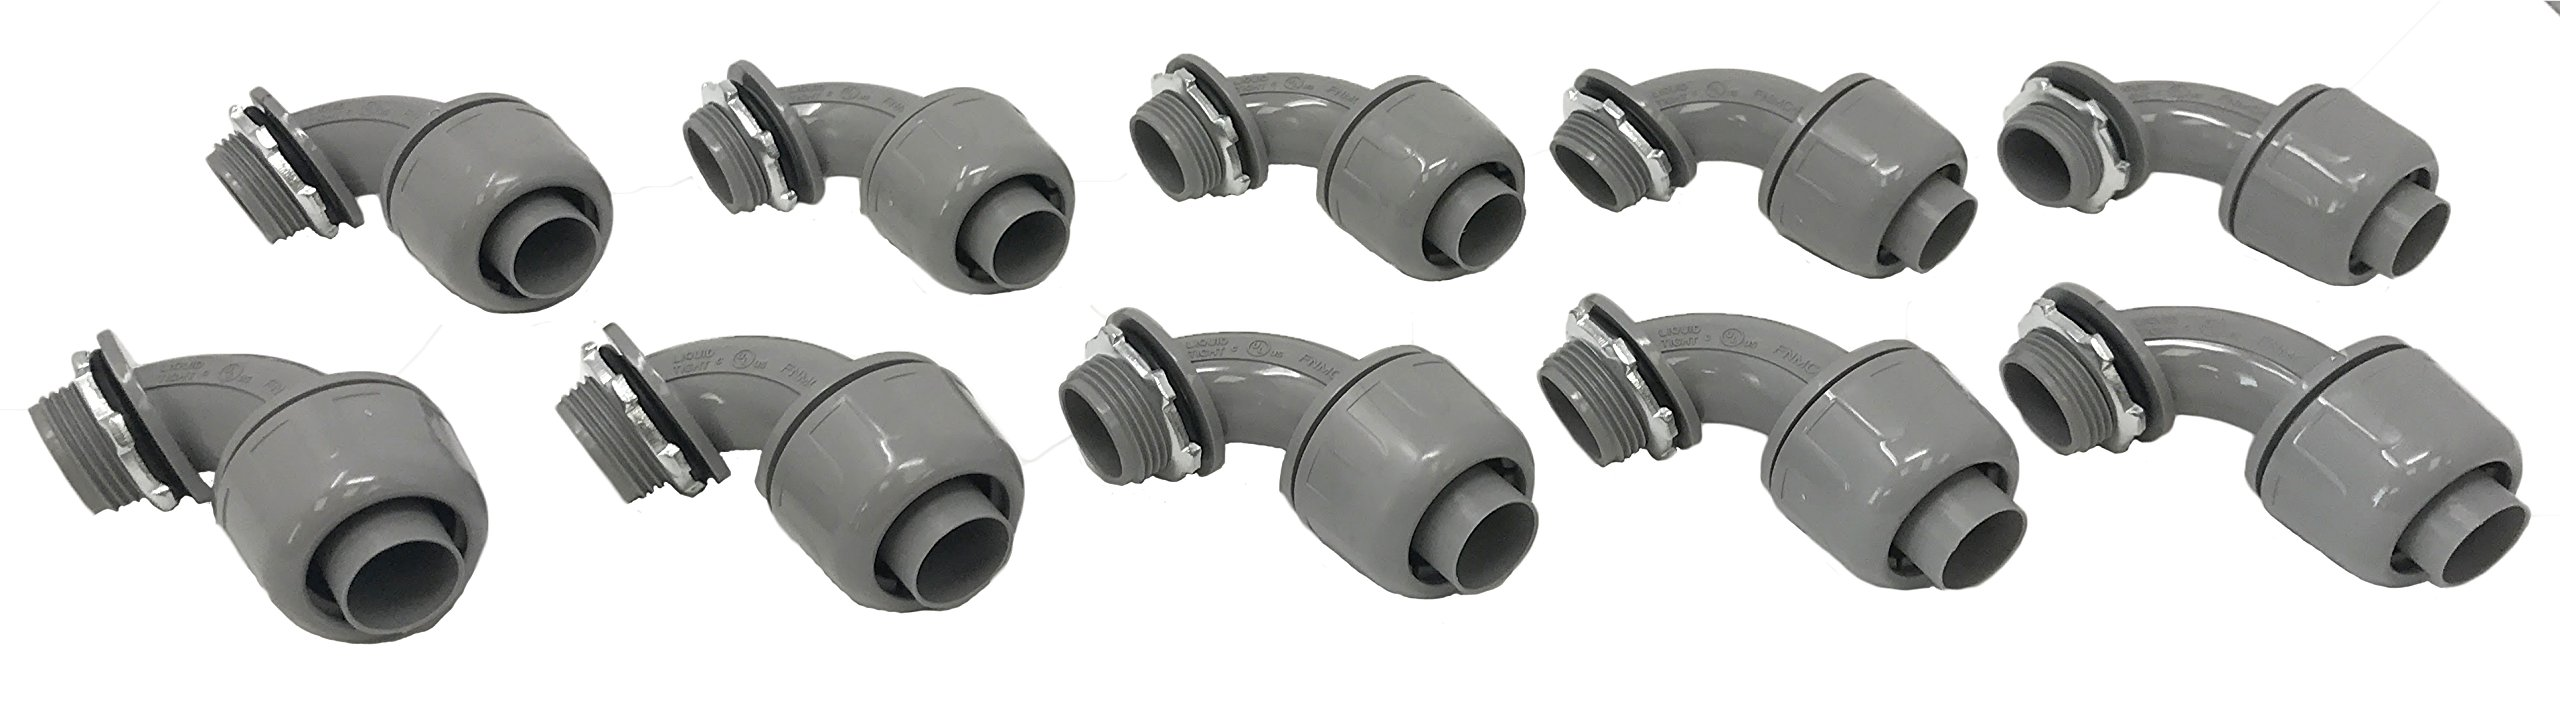 Sealproof 3/4-Inch 10 Pack Non-Metallic Liquid-Tight 90-Degree Conduit Connector Fitting, 3/4'' Dia 10-Pack